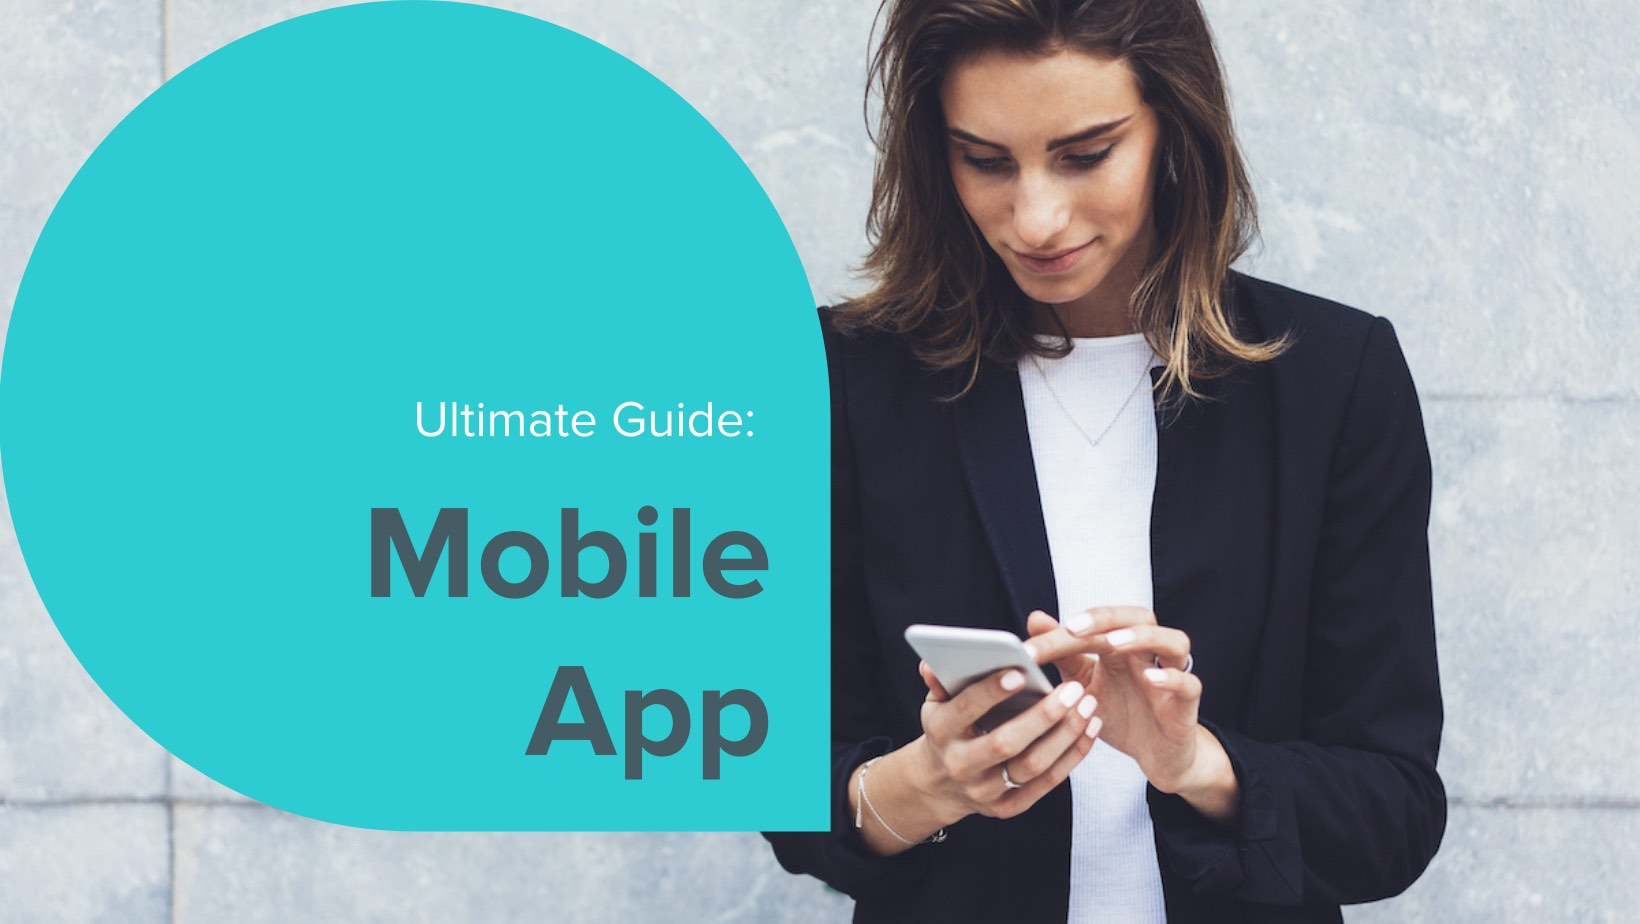 A woman is excited about the features of the updated answerconnect app